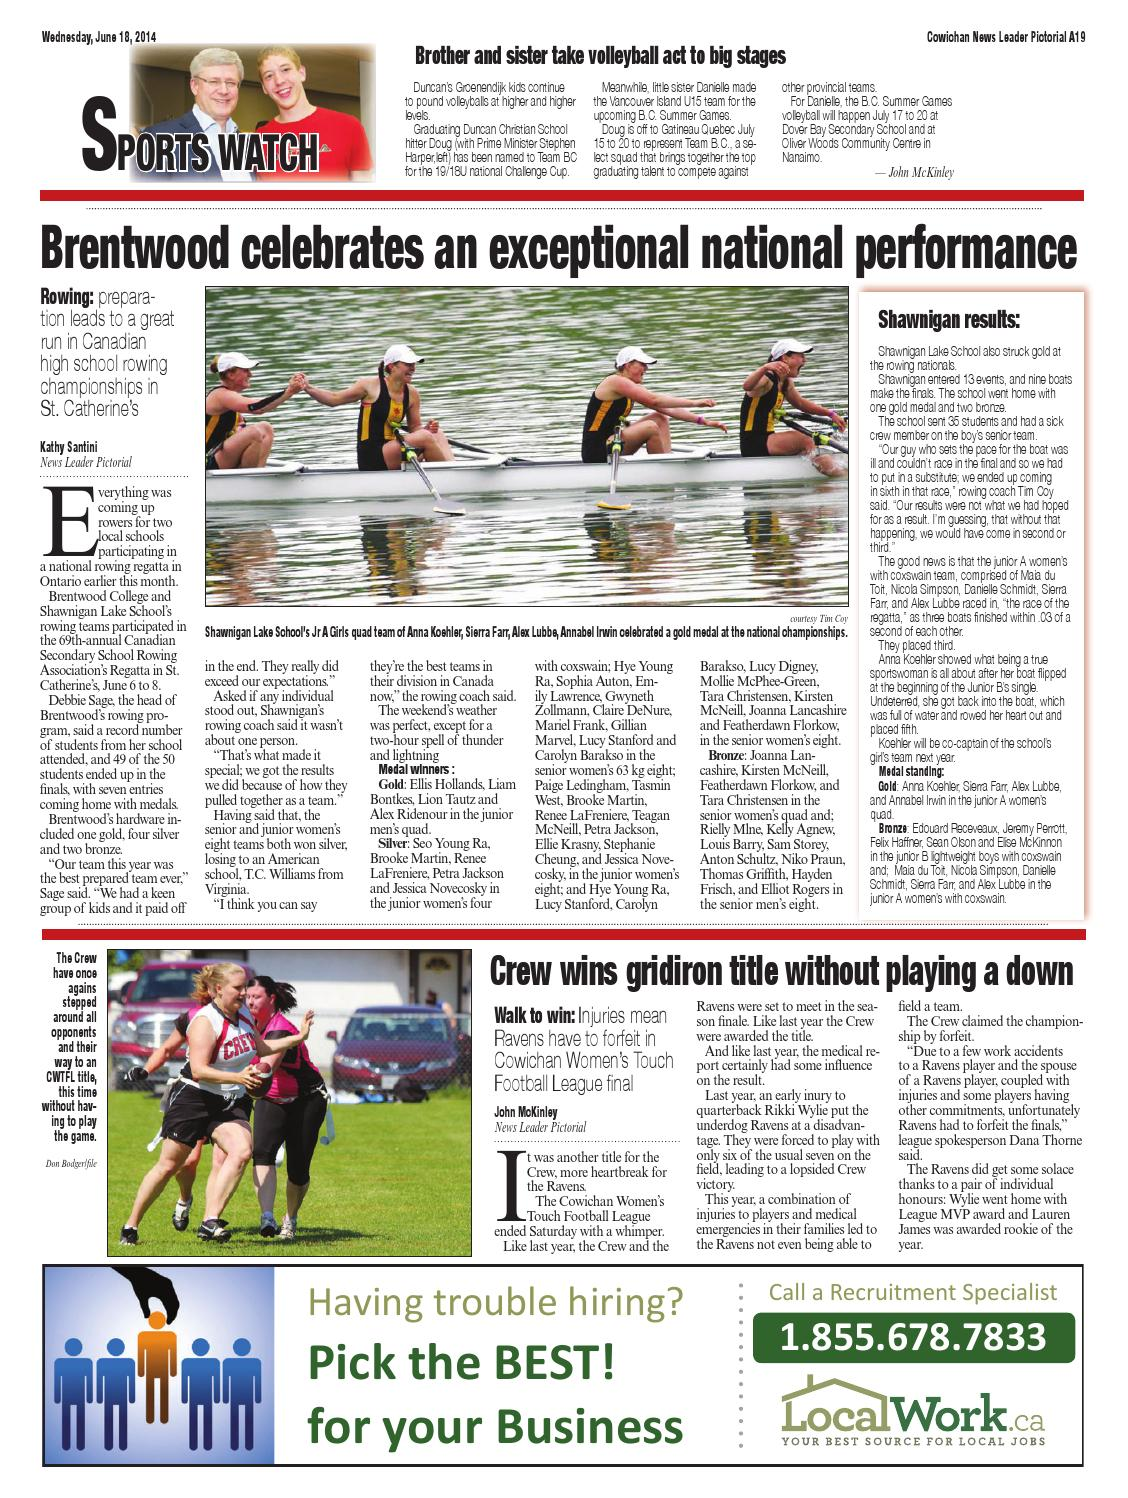 Cowichan News Leader Pictorial, June 18, 2014 by Black Press